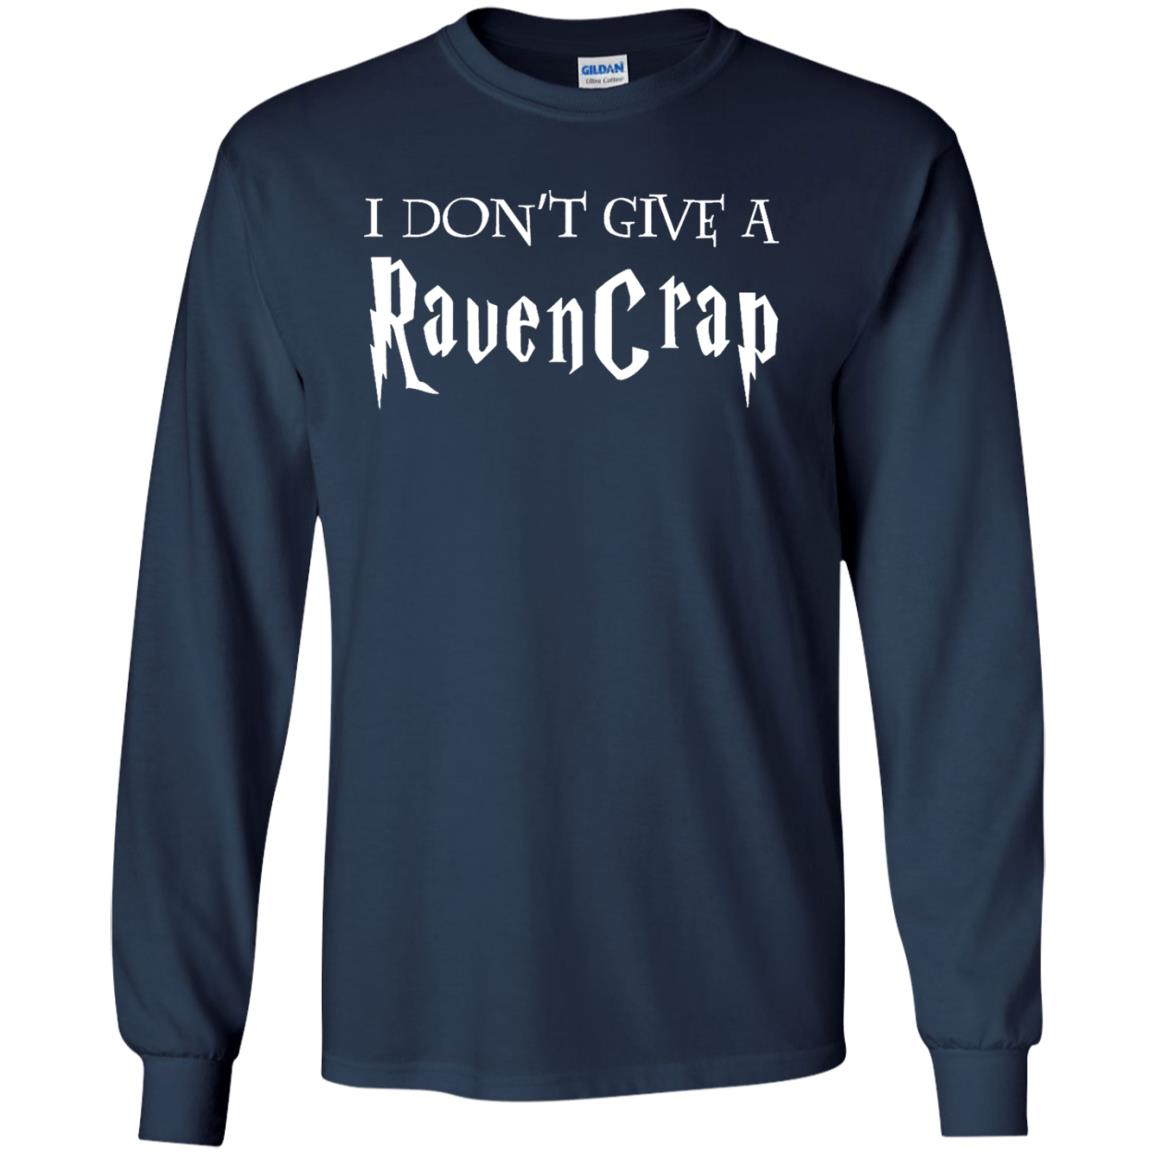 image 689 - Harry Potter: I don't give a Ravencrap shirt & sweater